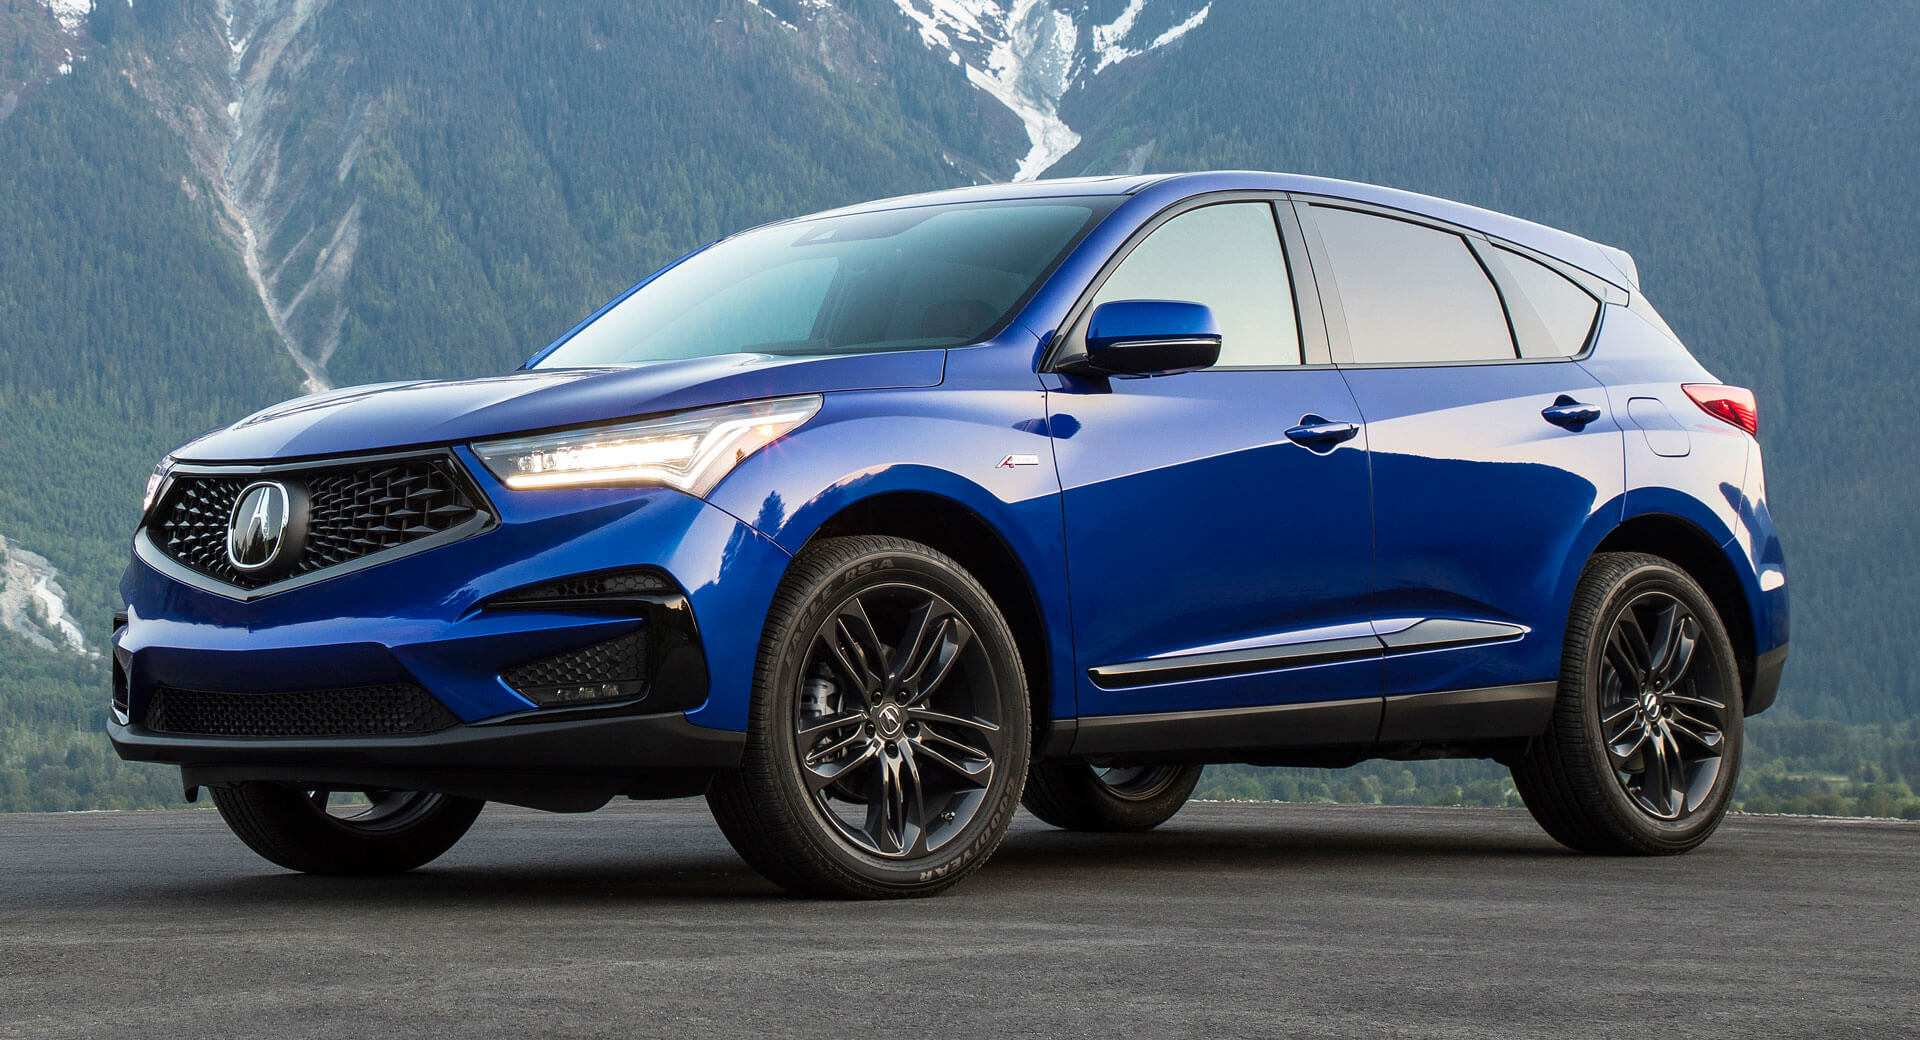 38 Best Review 2020 Acura Rdx V6 First Drive with 2020 Acura Rdx V6